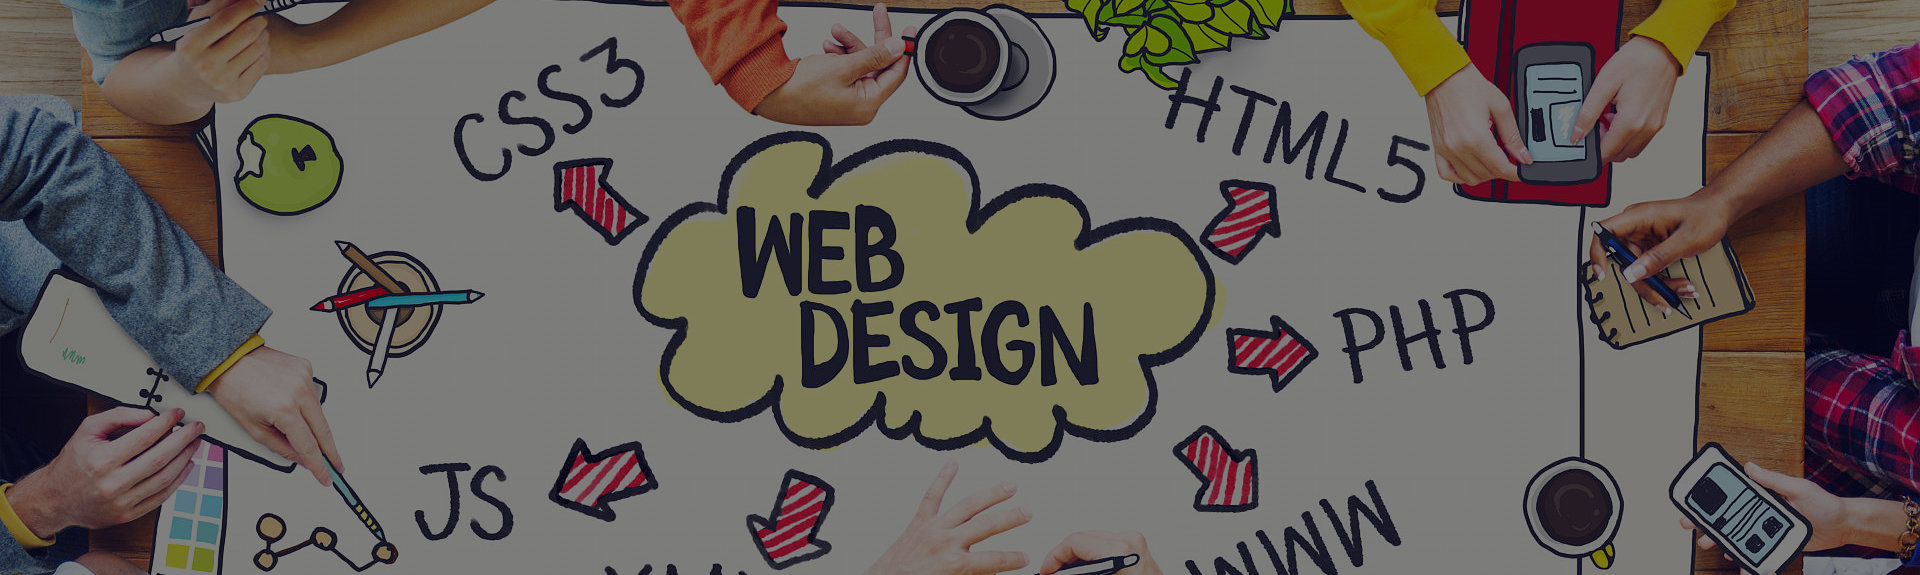 Hands and web design text